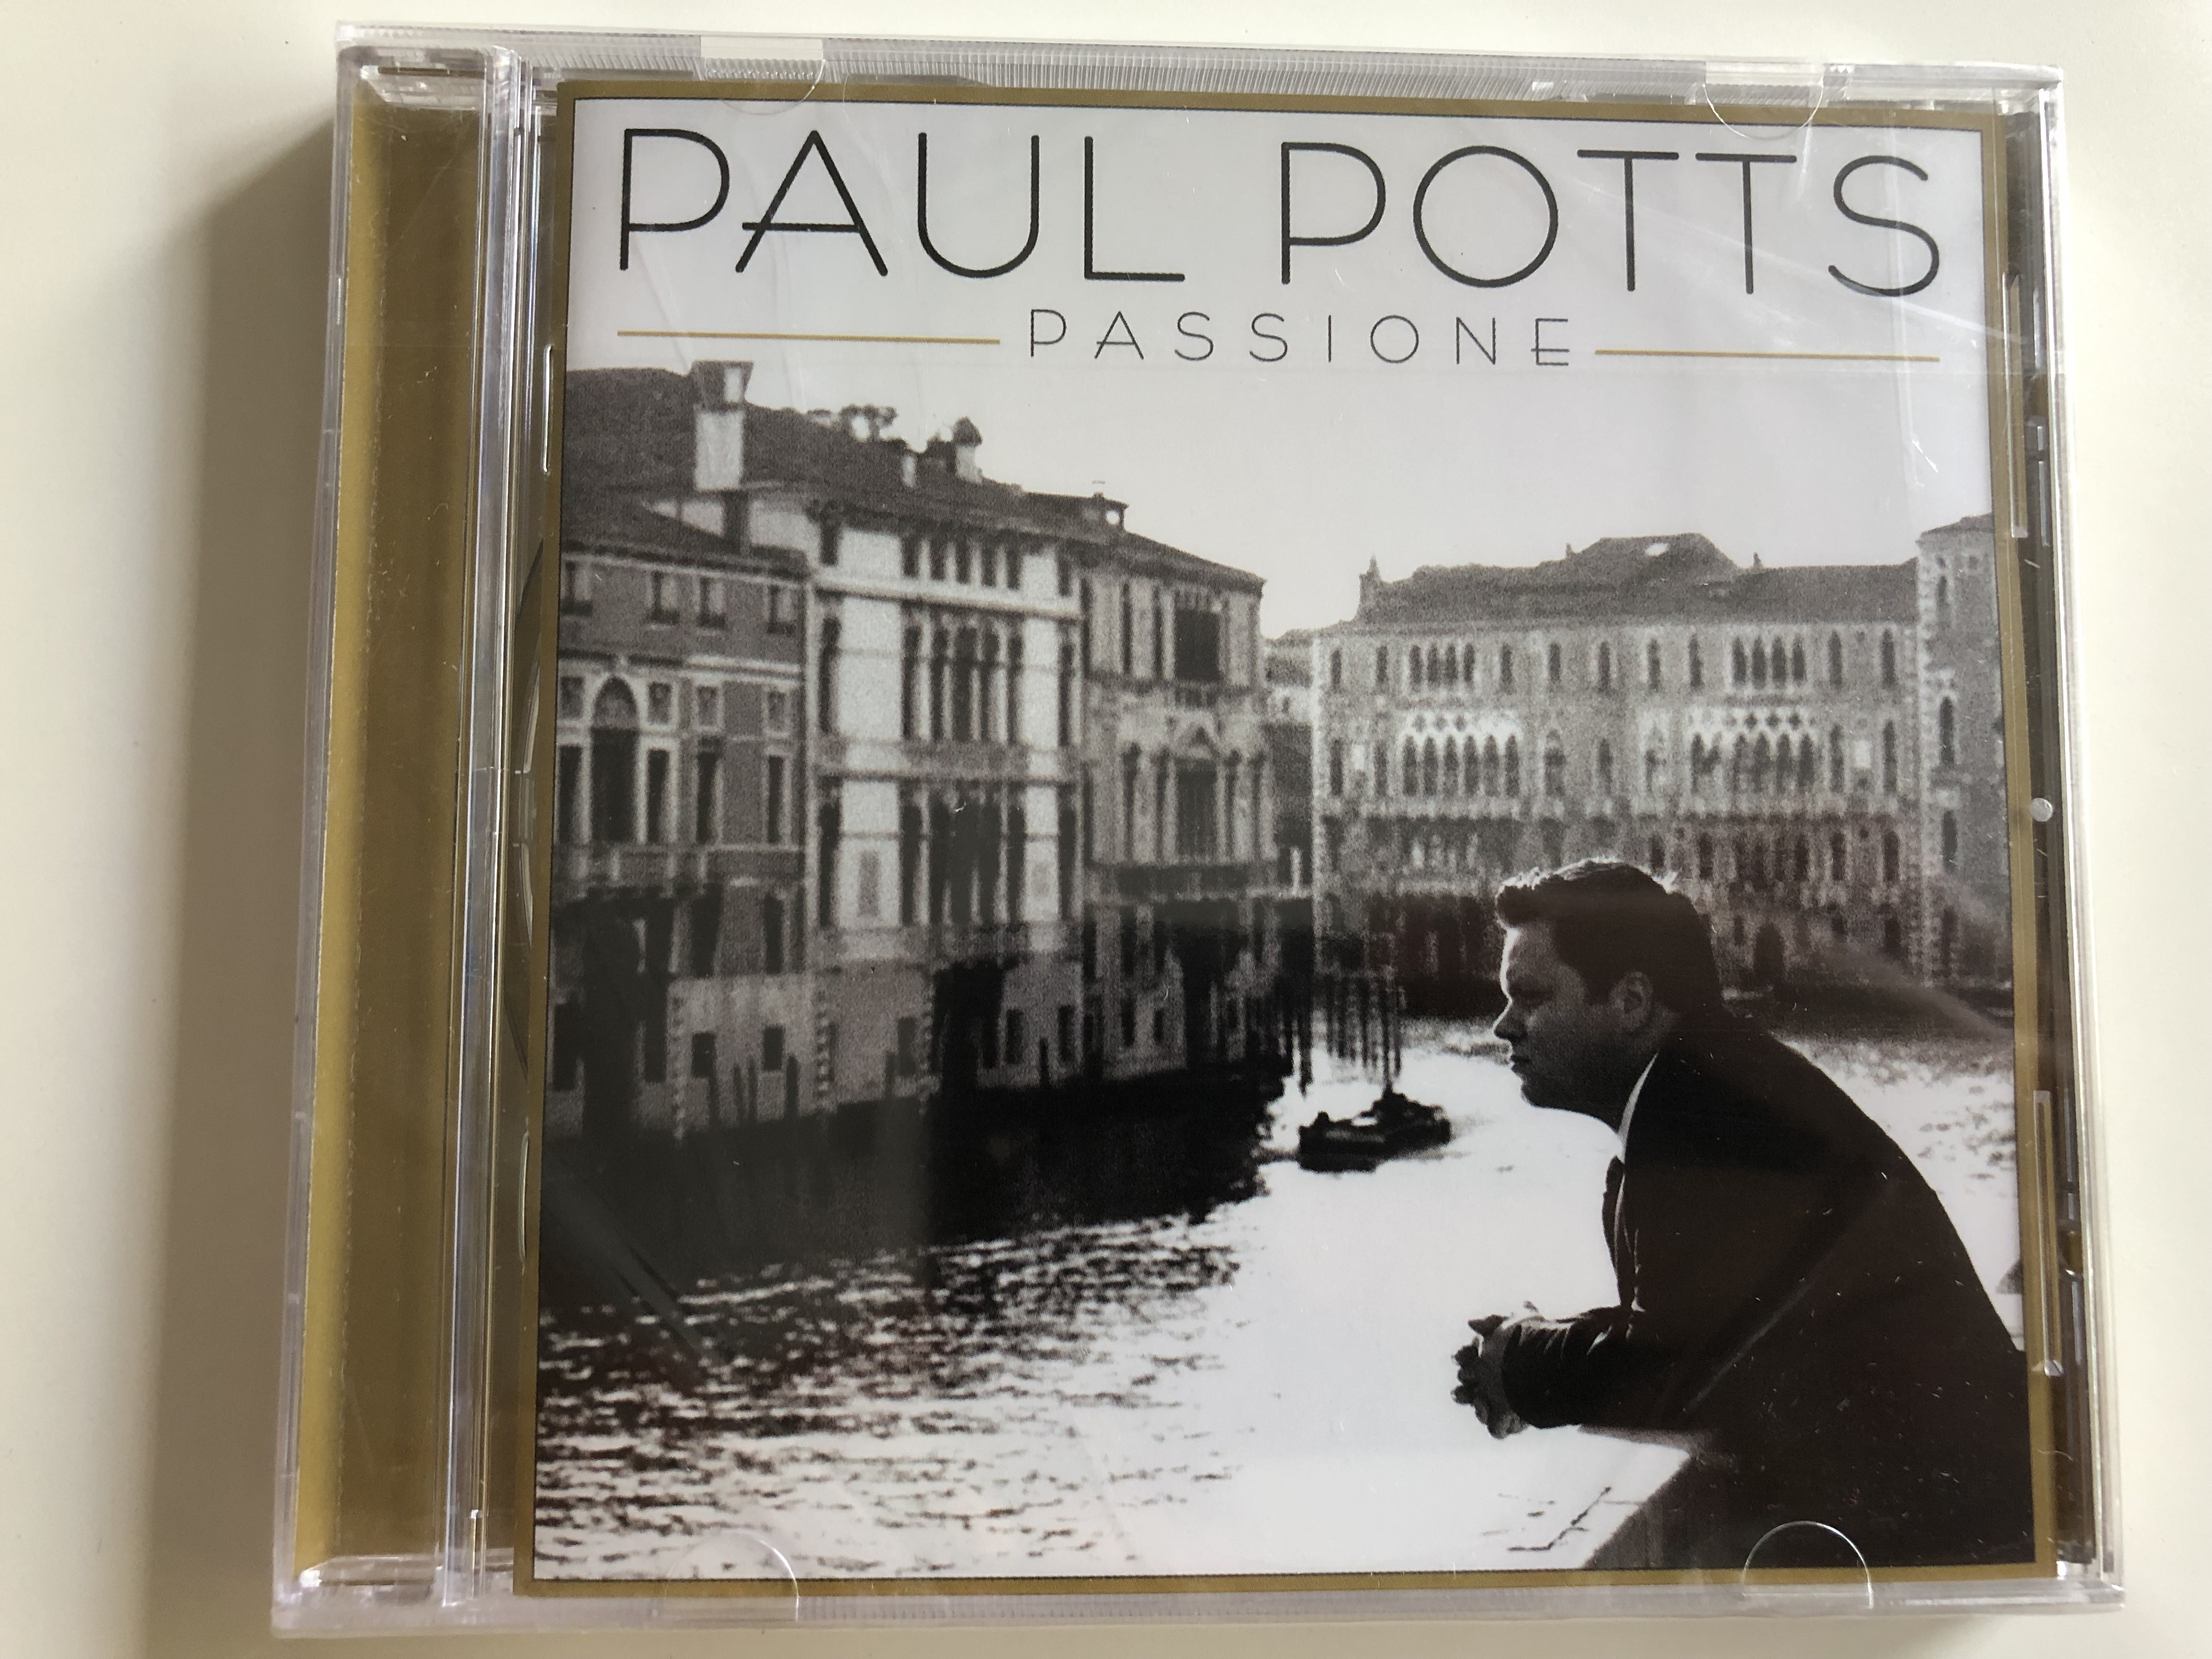 paul-potts-passione-audio-cd-2009-sony-music-lc-01413-1-.jpg